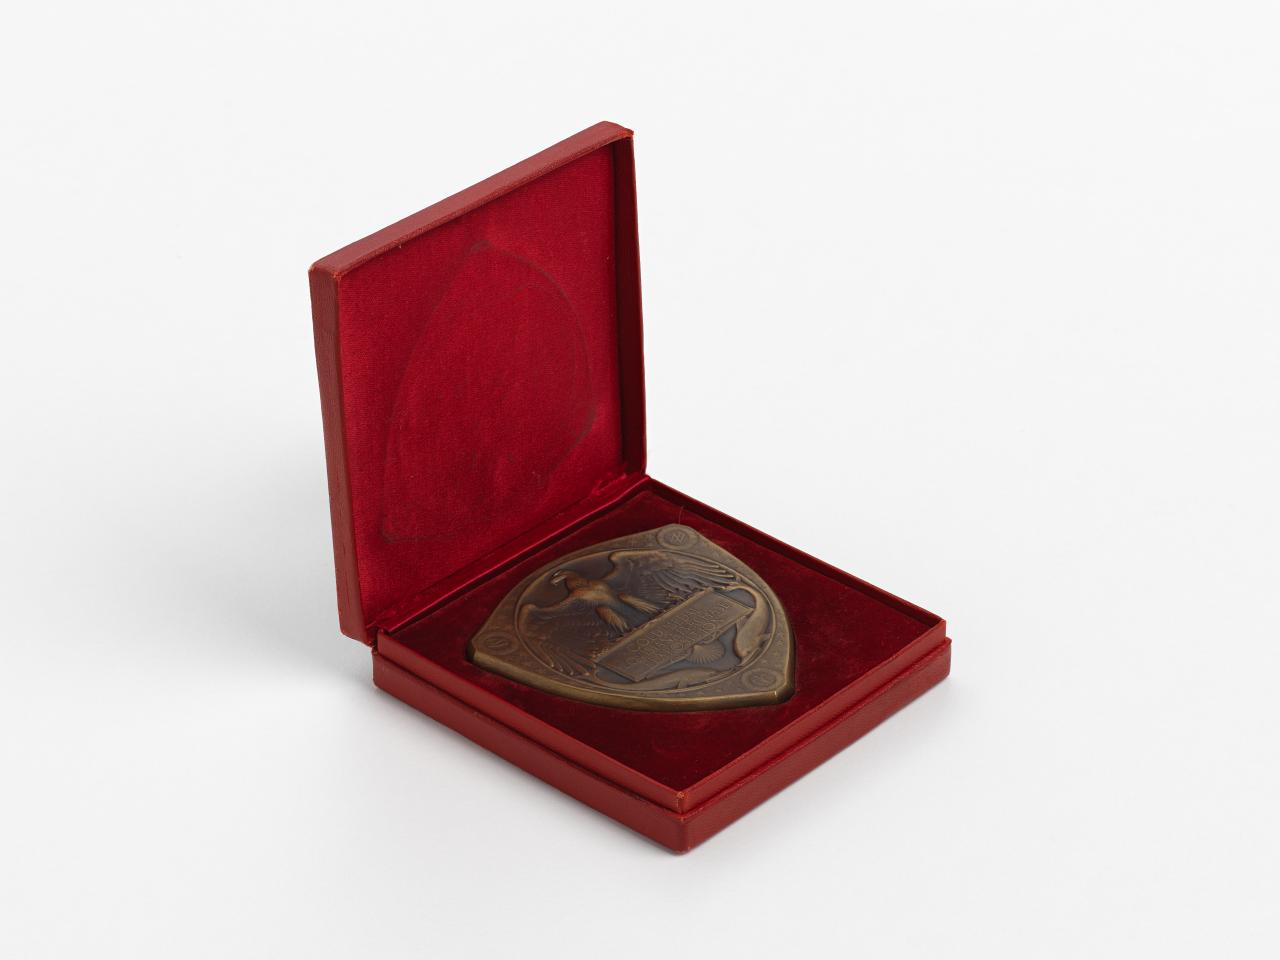 Louisiana Purchase Exposition, Saint Louis, gold prize medal and box